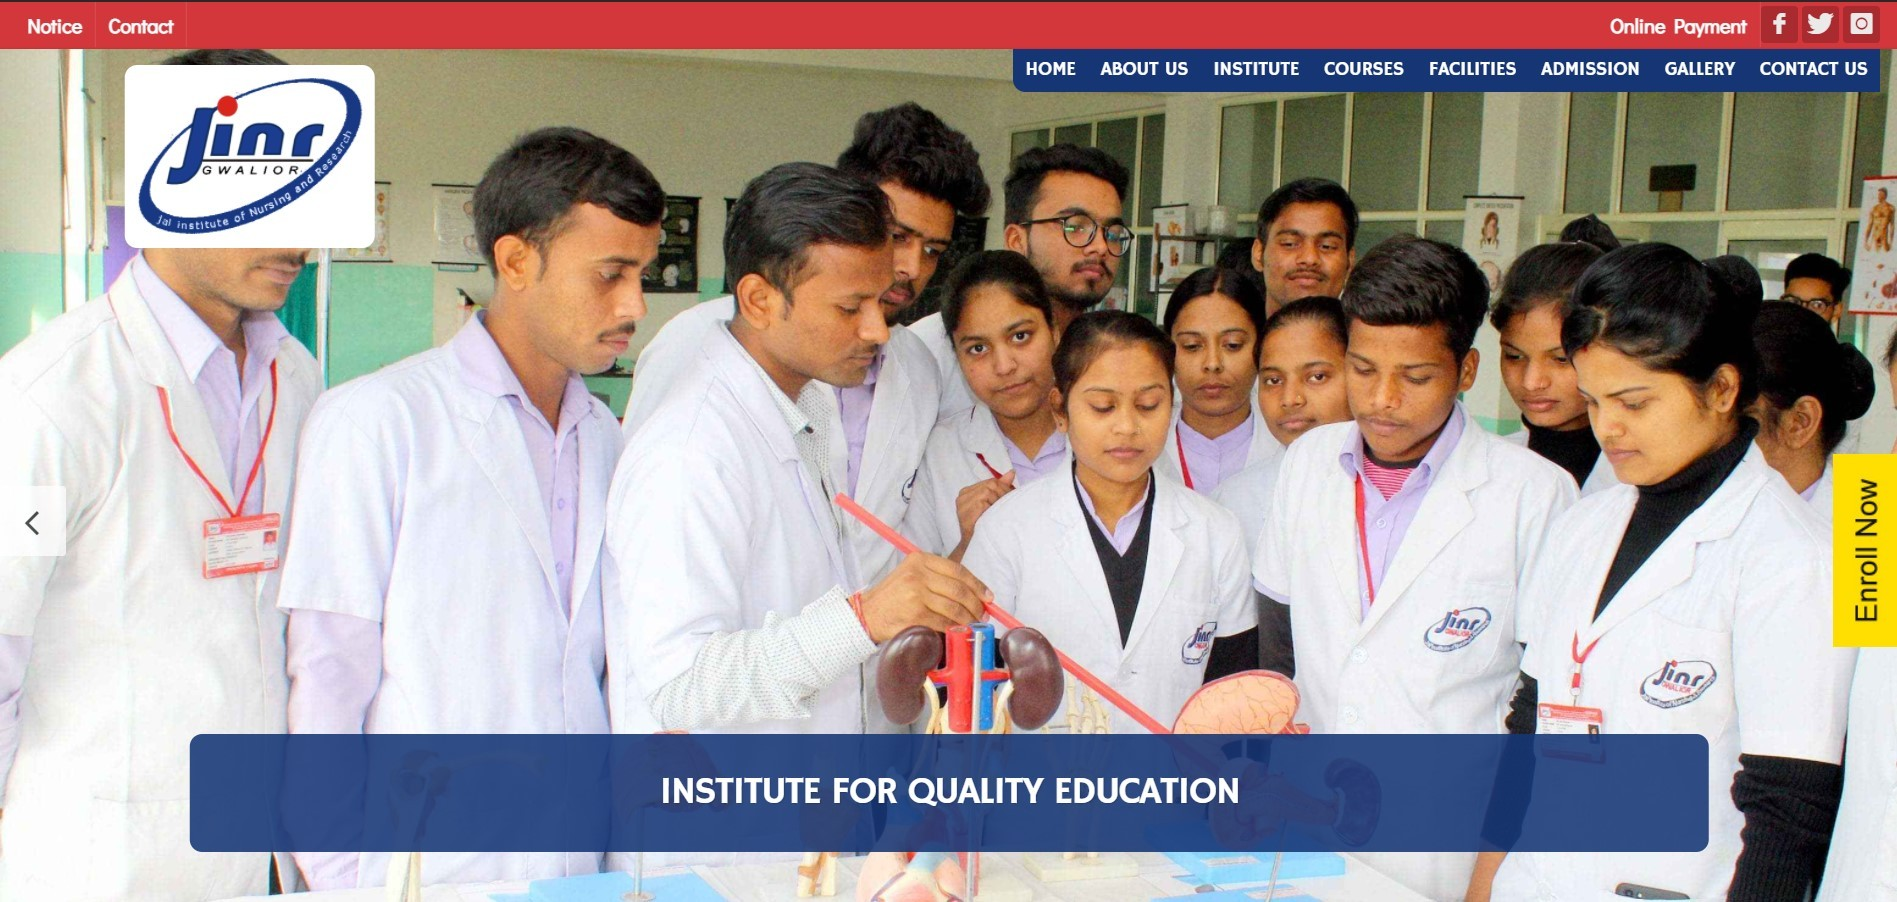 Jai Institute of Nursing & Research